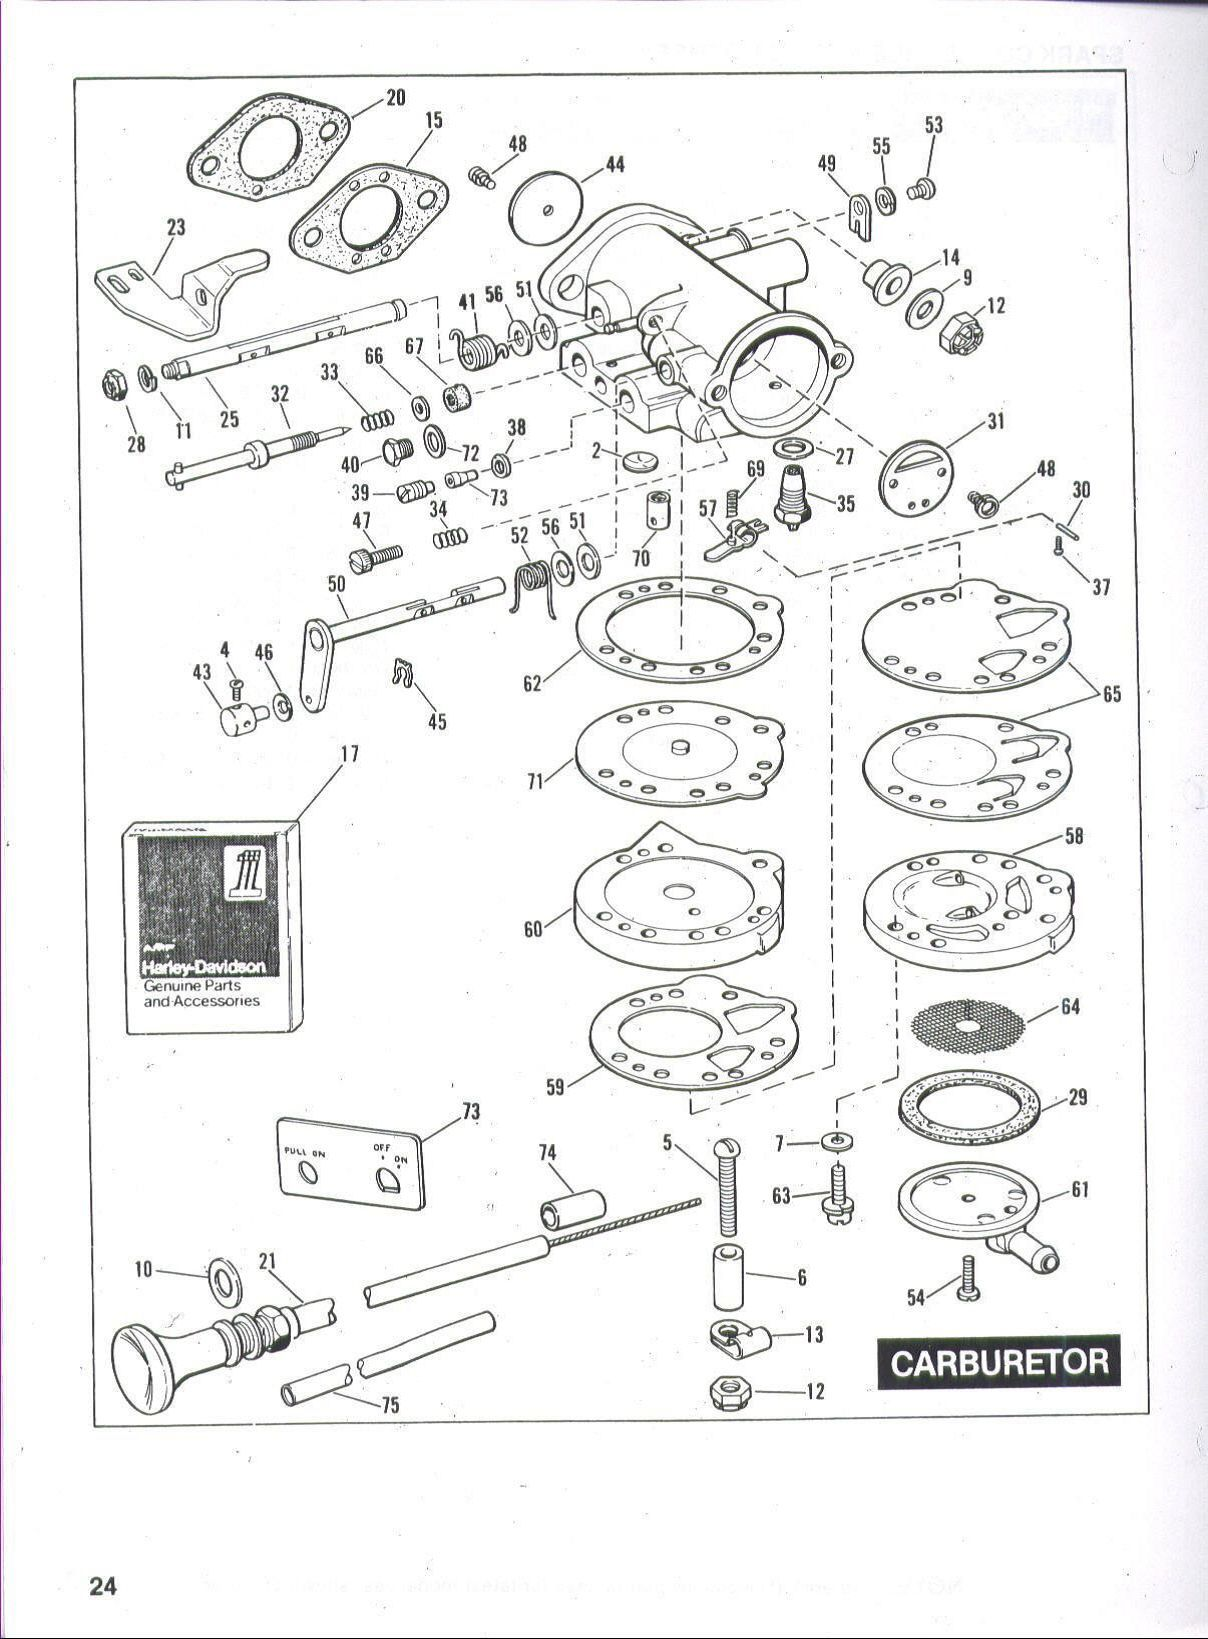 5176dbb44702a1adc4080edf7301936d harley davidson golf cart carburetor diagram utv stuff westinghouse golf cart wiring diagram at webbmarketing.co